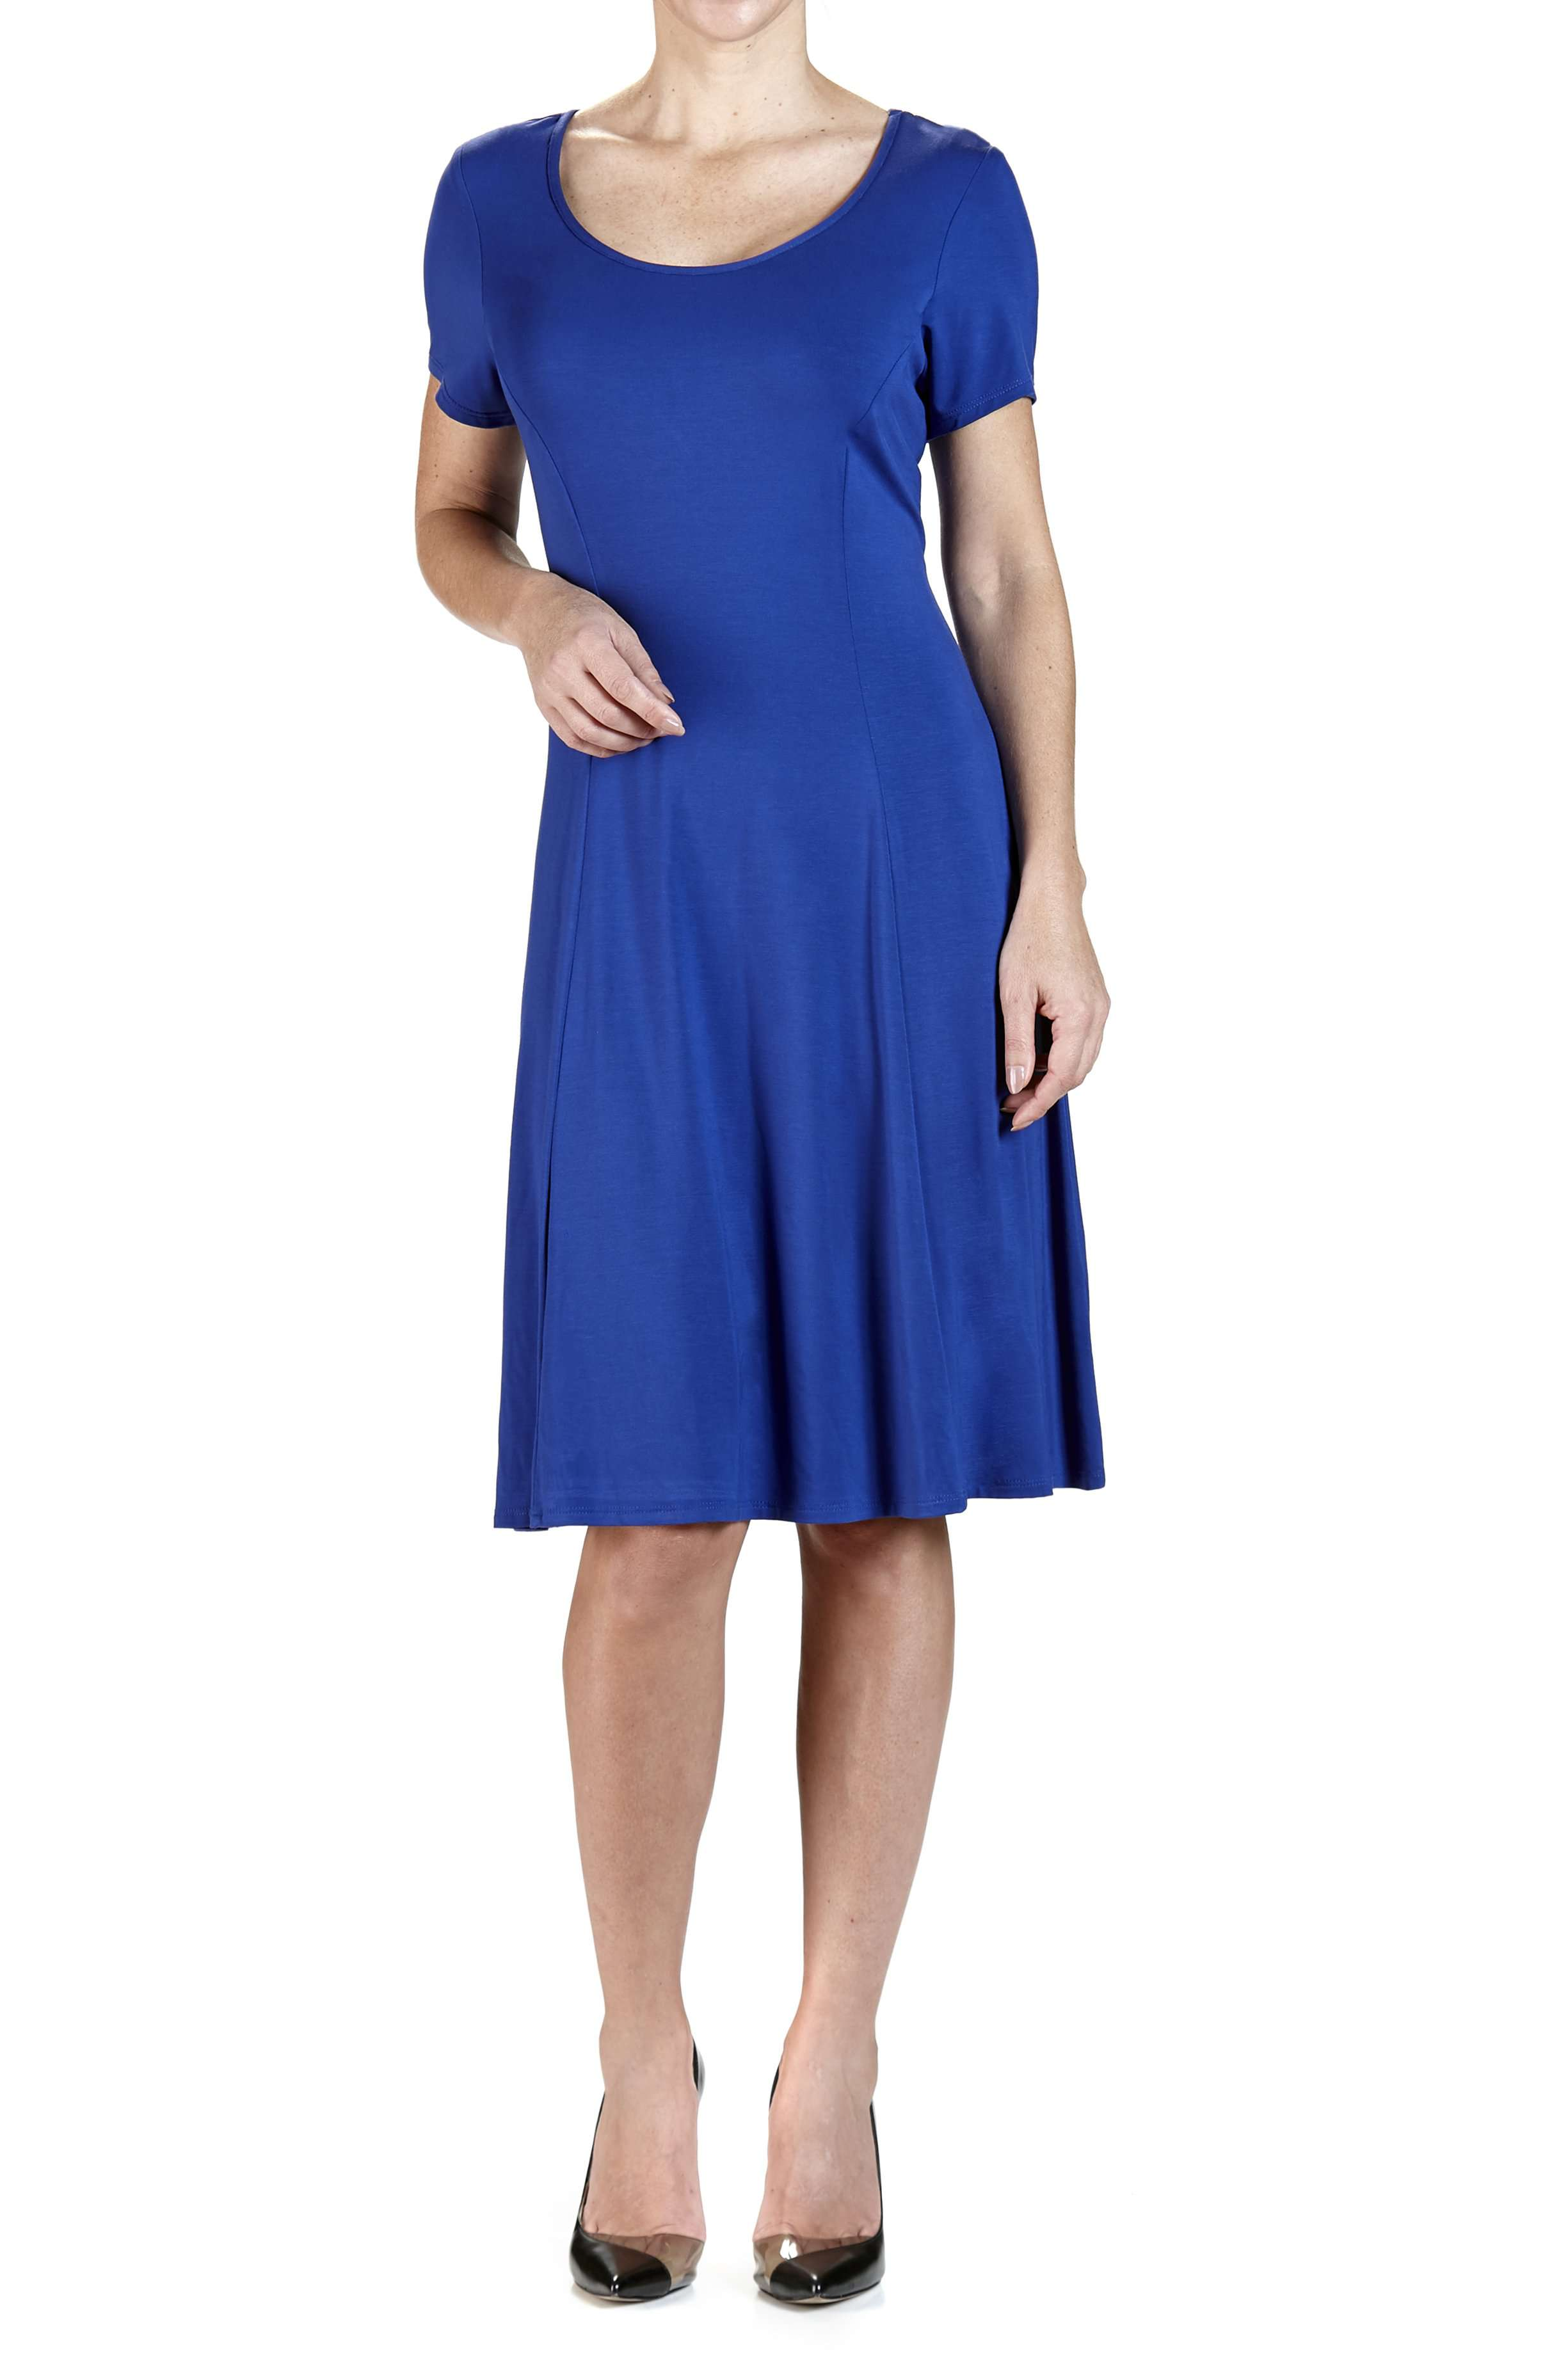 Dress Royal Blue Quality knit Fabric-Flattering Design - Yvonne Marie